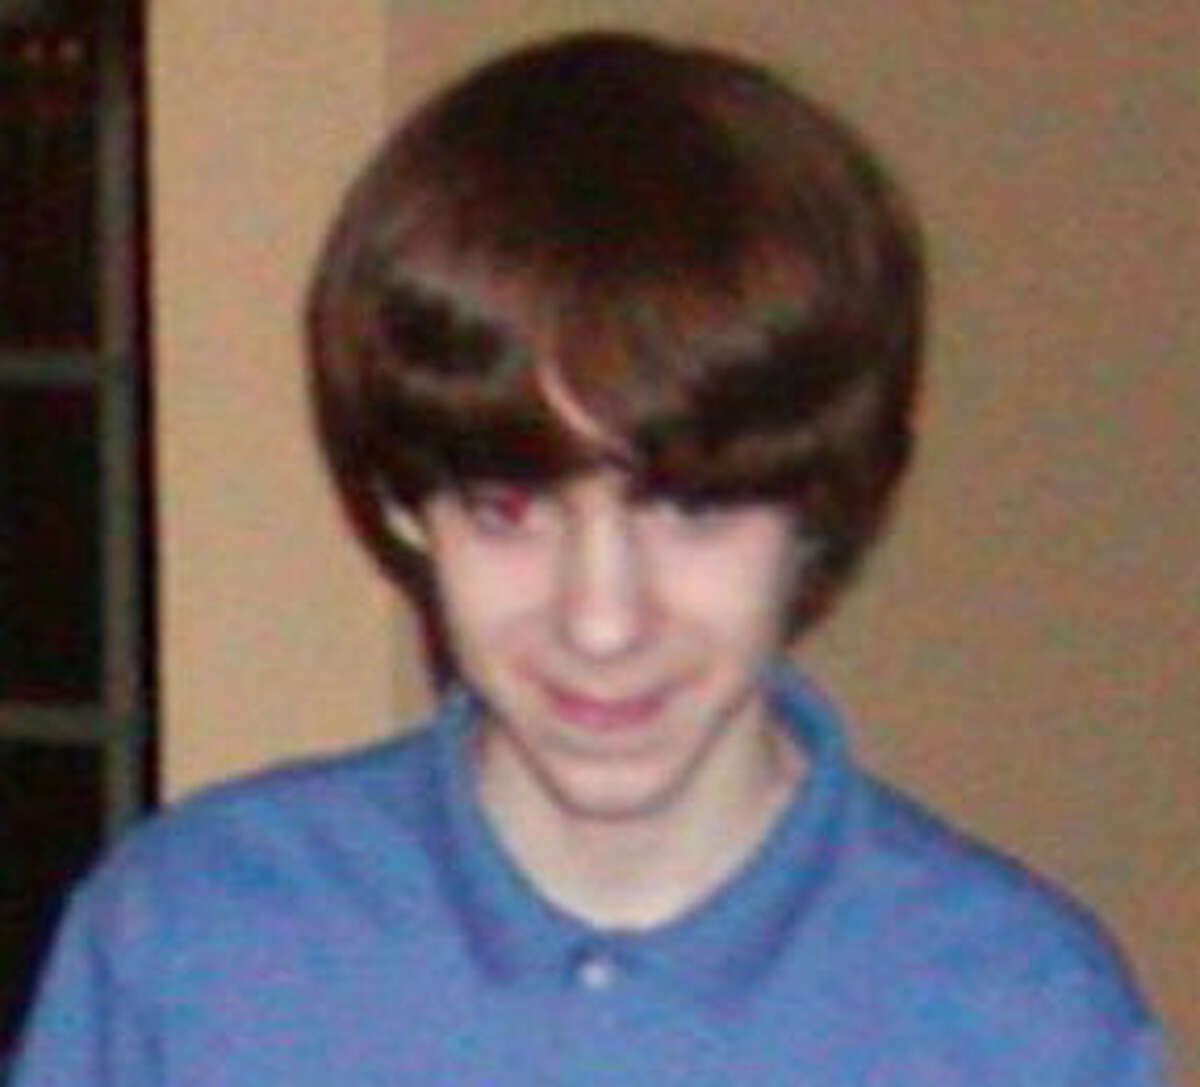 A photo from ABCNews.com shows a young Adam Lanza